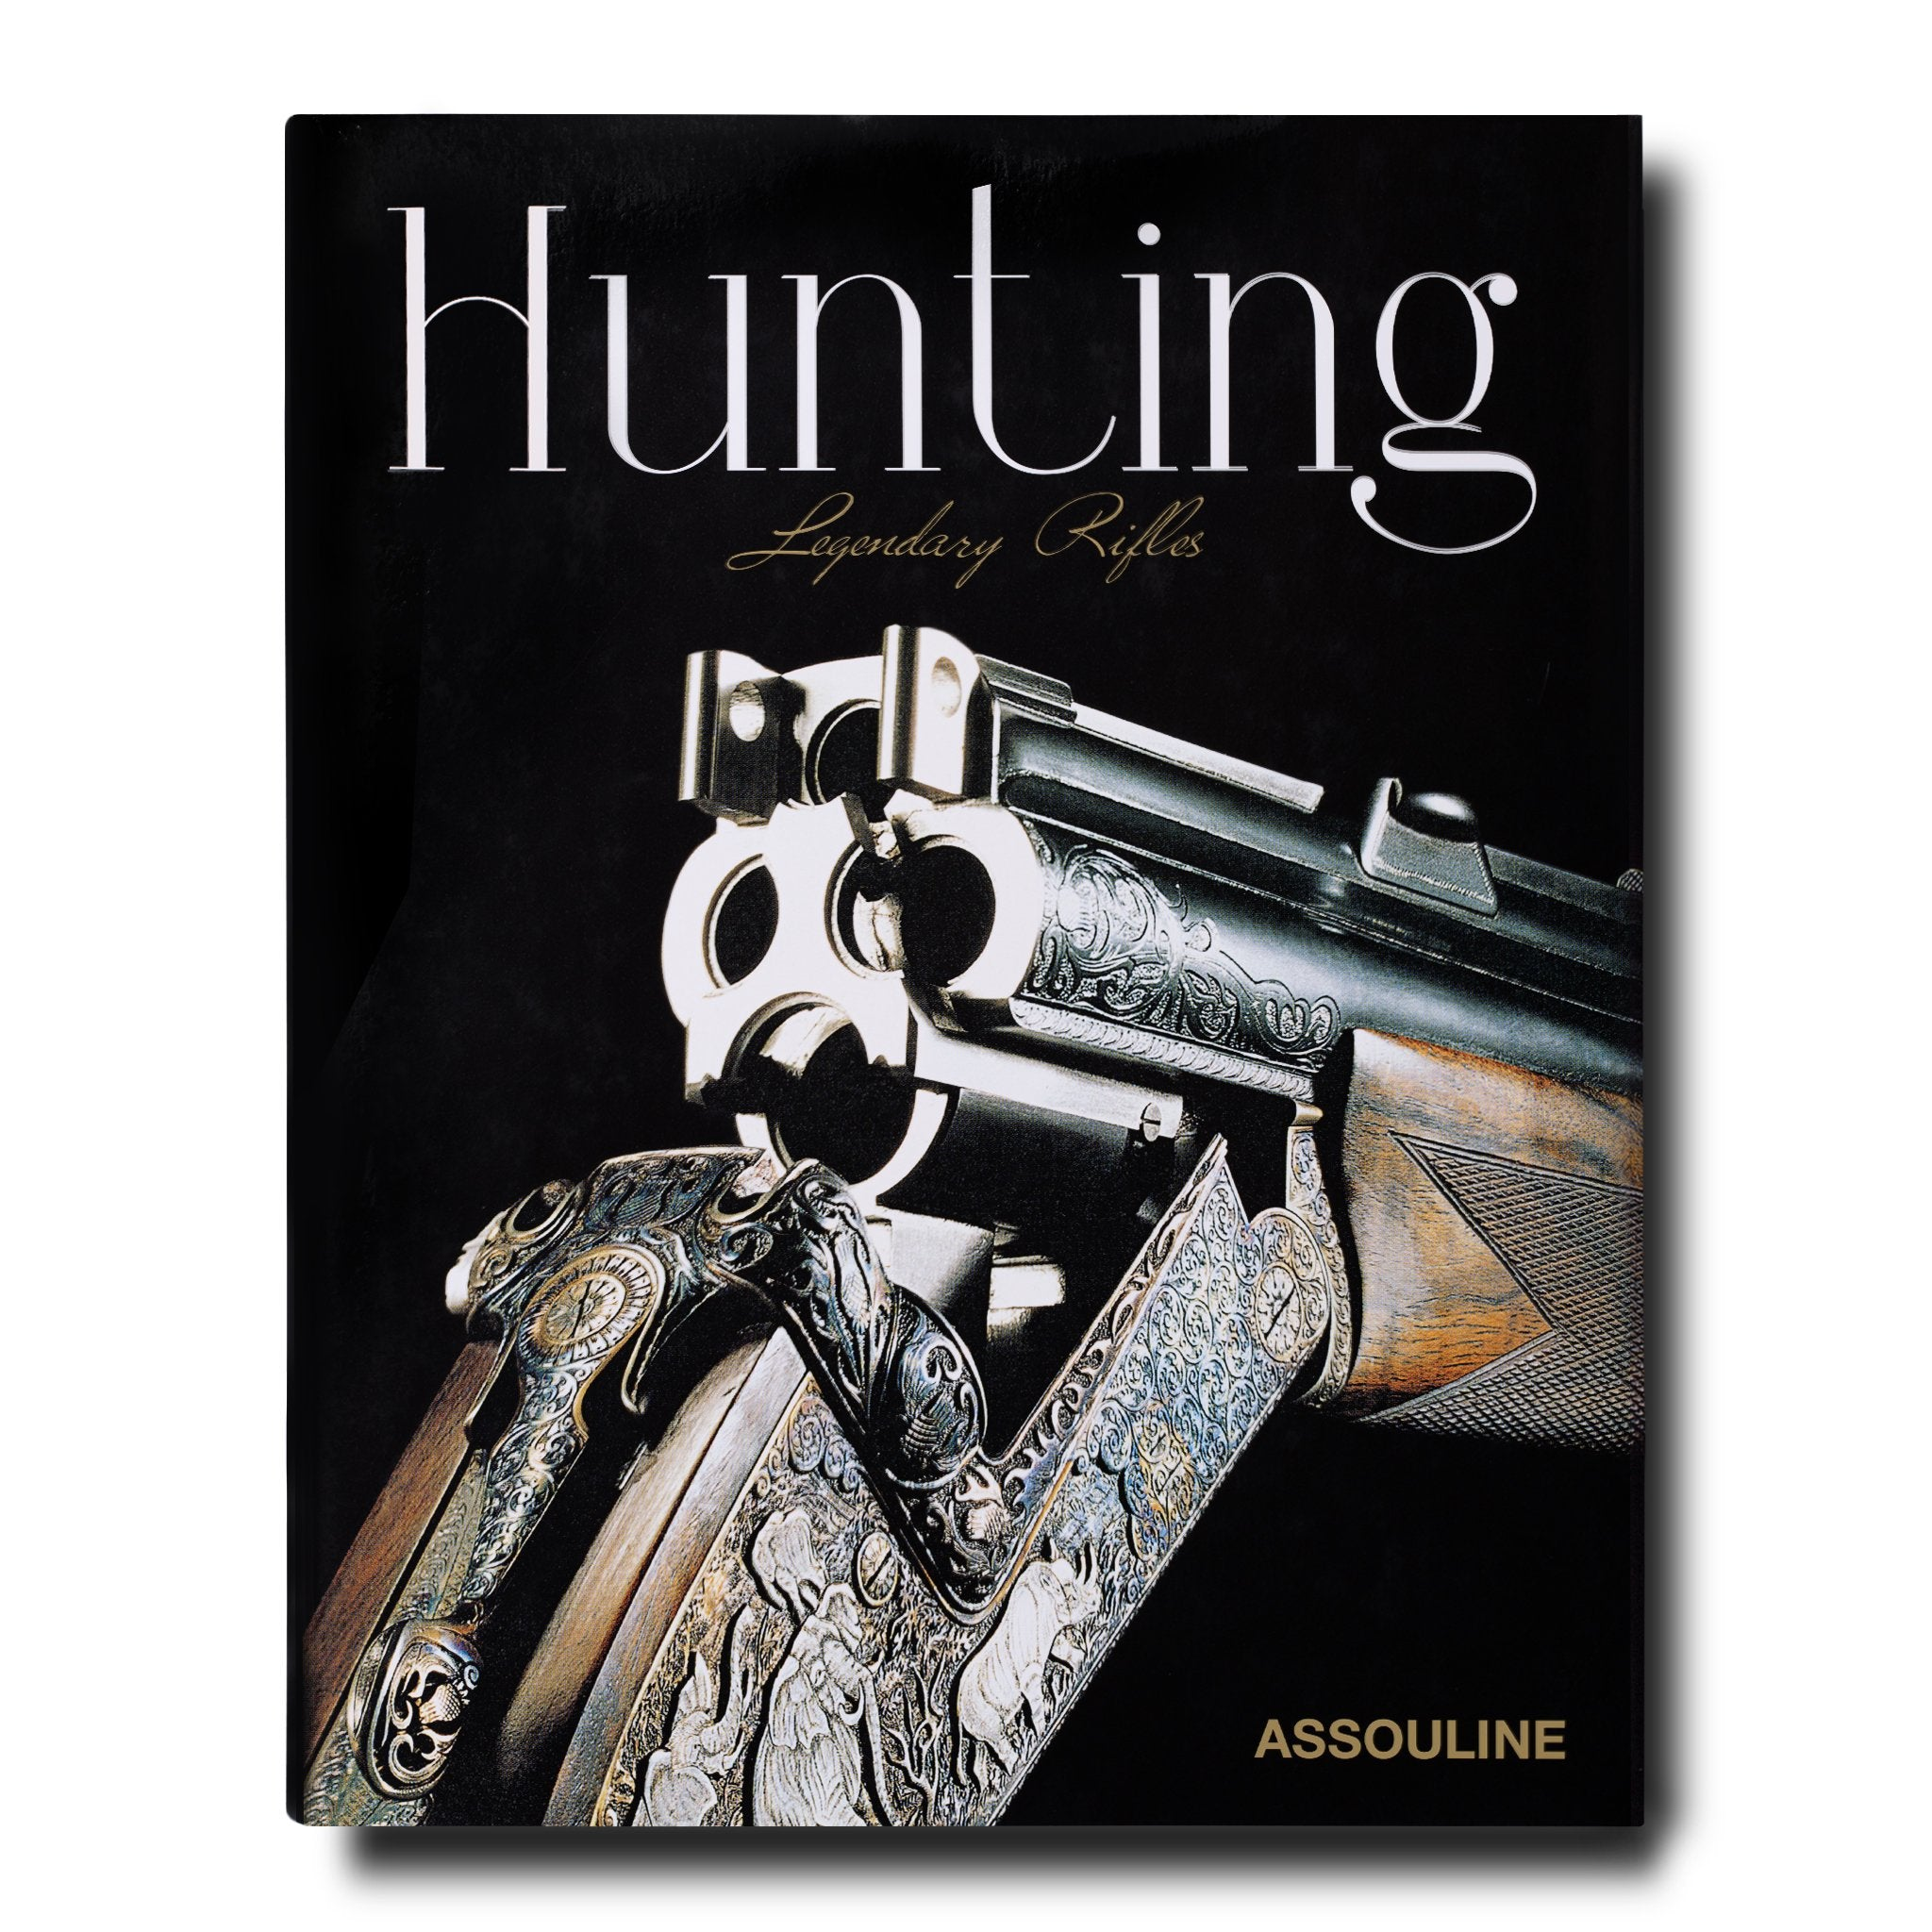 Assouline Books Hunting, Legendary Rifles